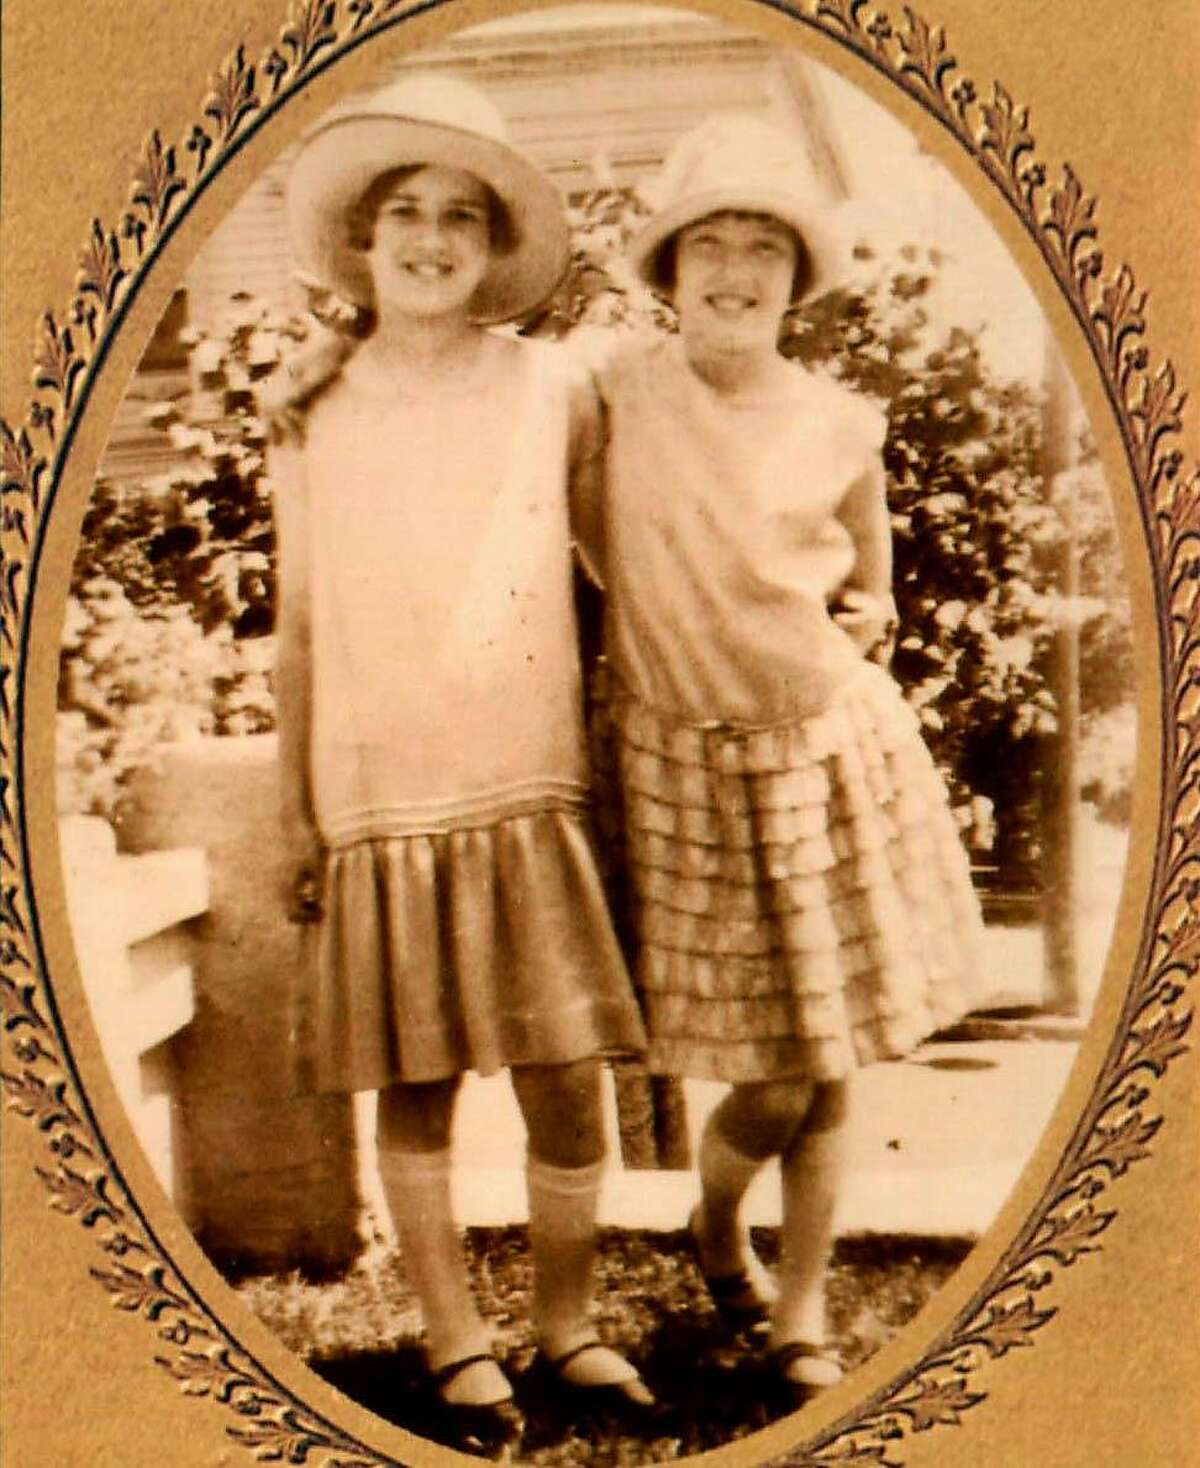 Dixie Belletto (right) with her friend Marie Van Tassell in front of Belletto's home on Fair Oaks Street in San Francisco.